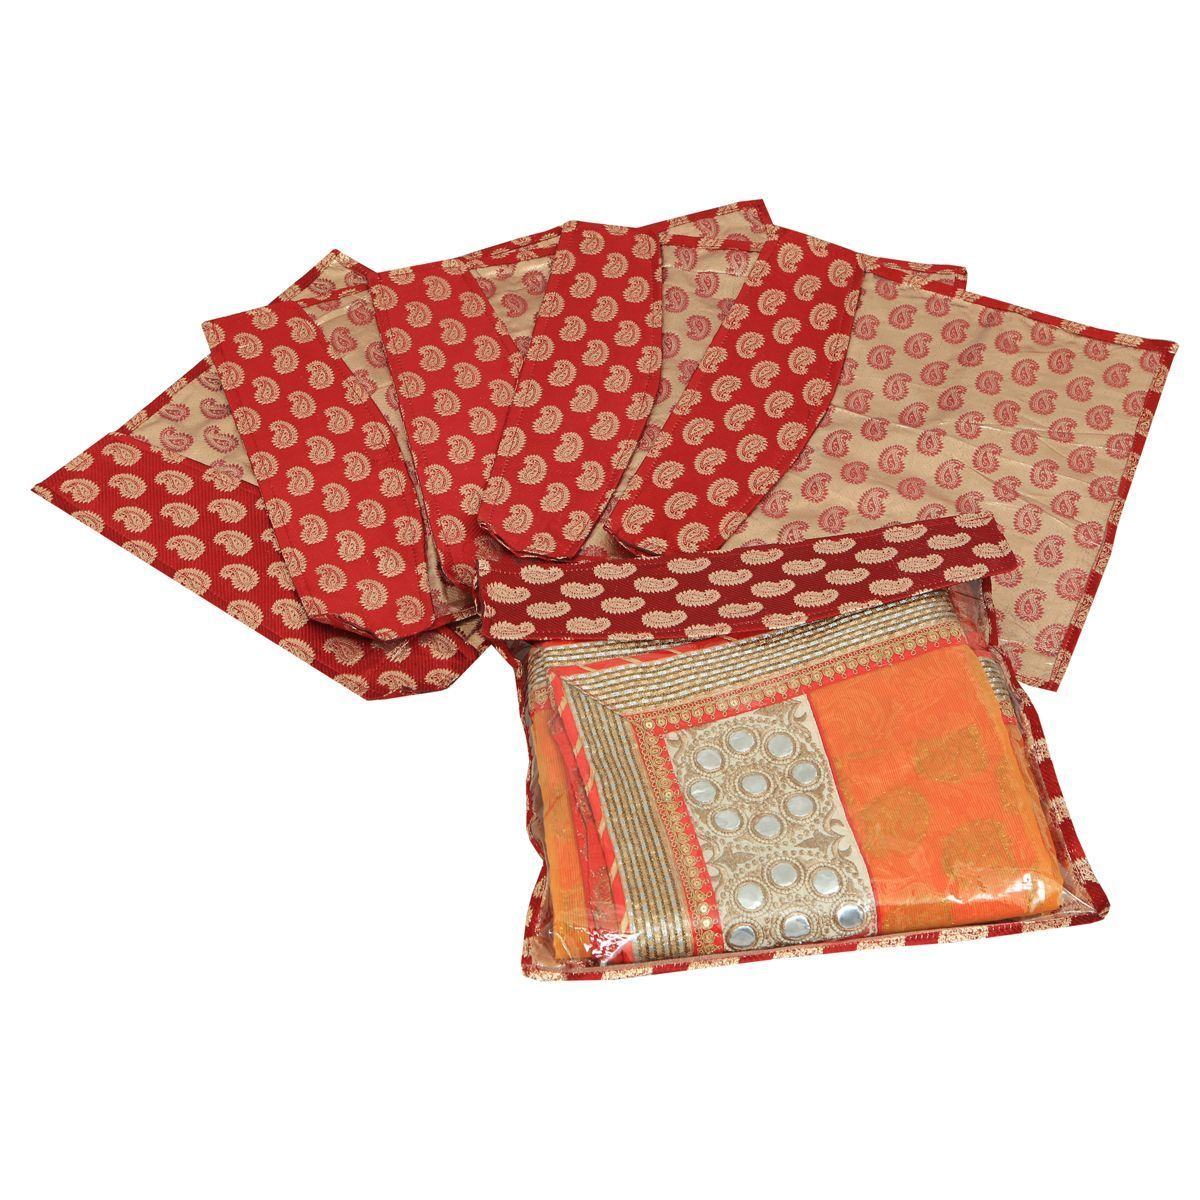 "Kuber Industriesâ""¢ Brocade Saree Cover Pack of 10 Pcs (Maroon) KU181"